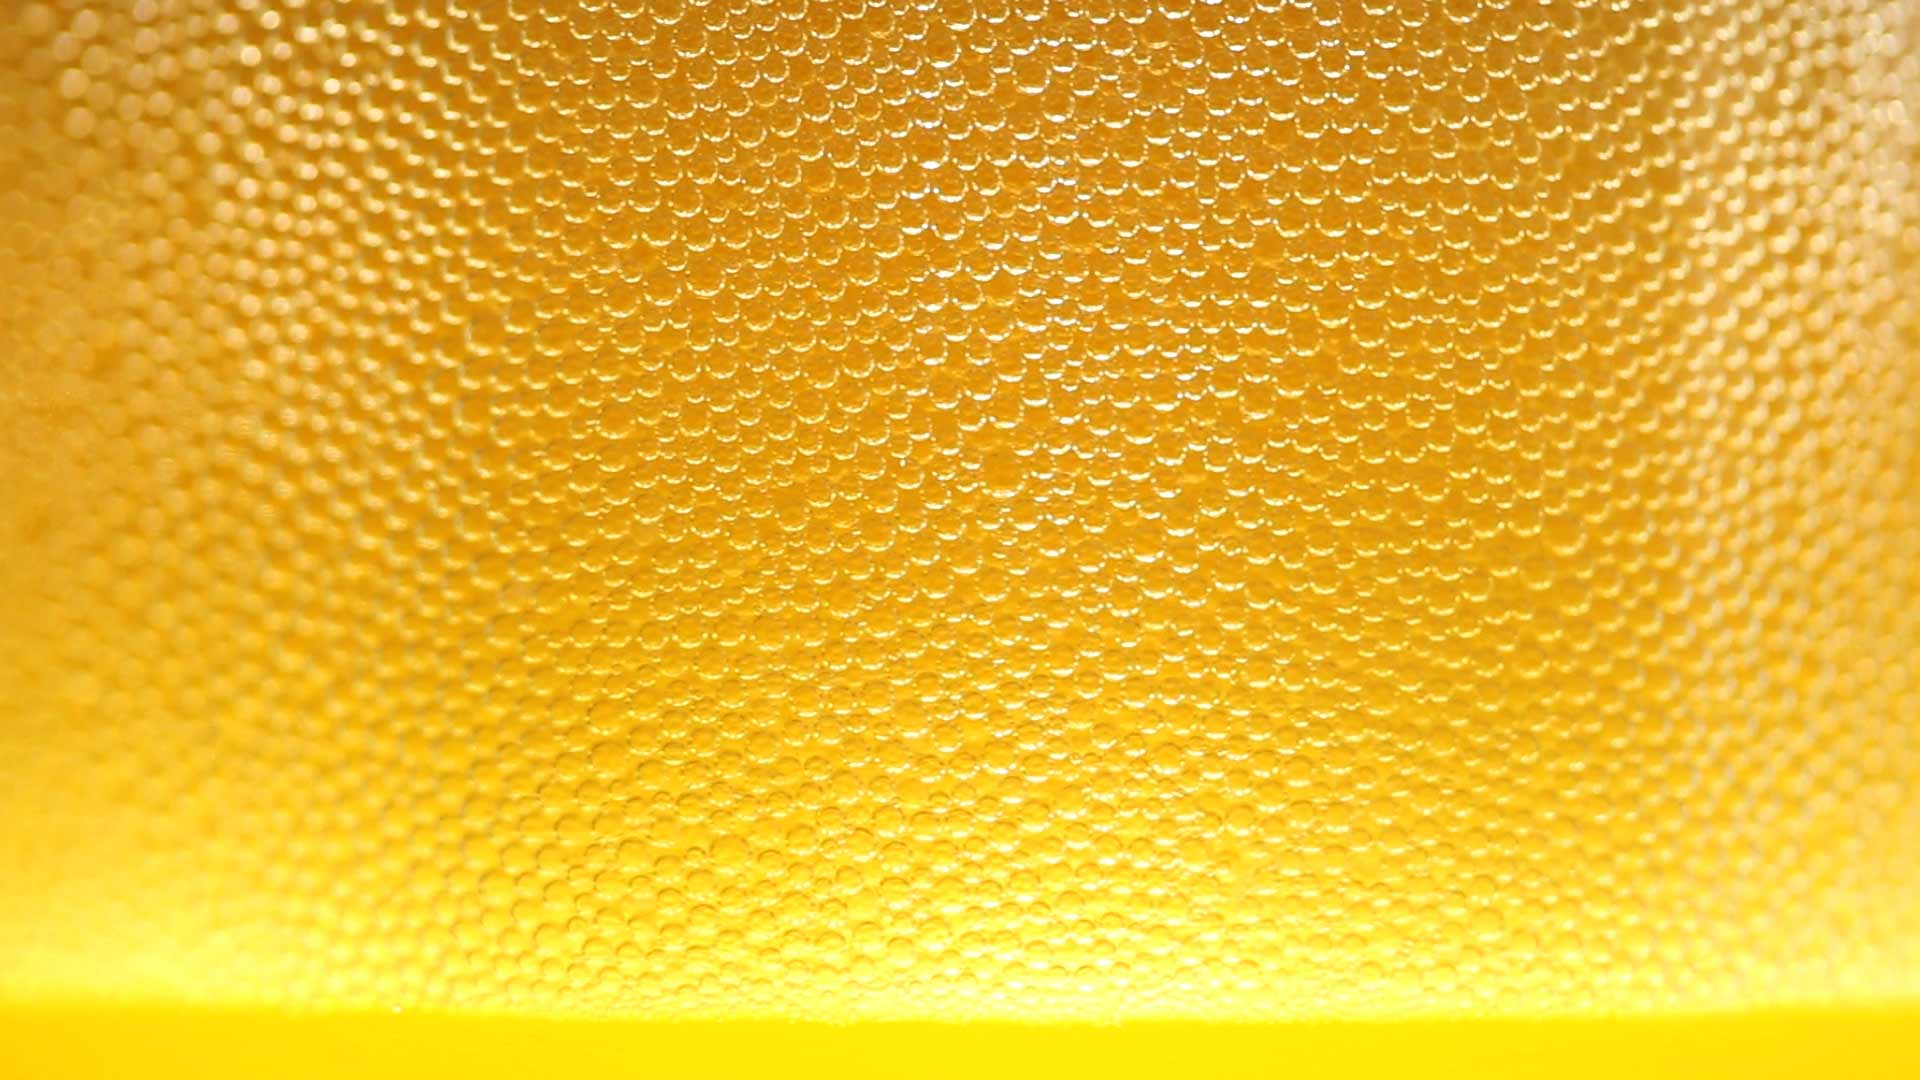 hophaus-bier-background-1